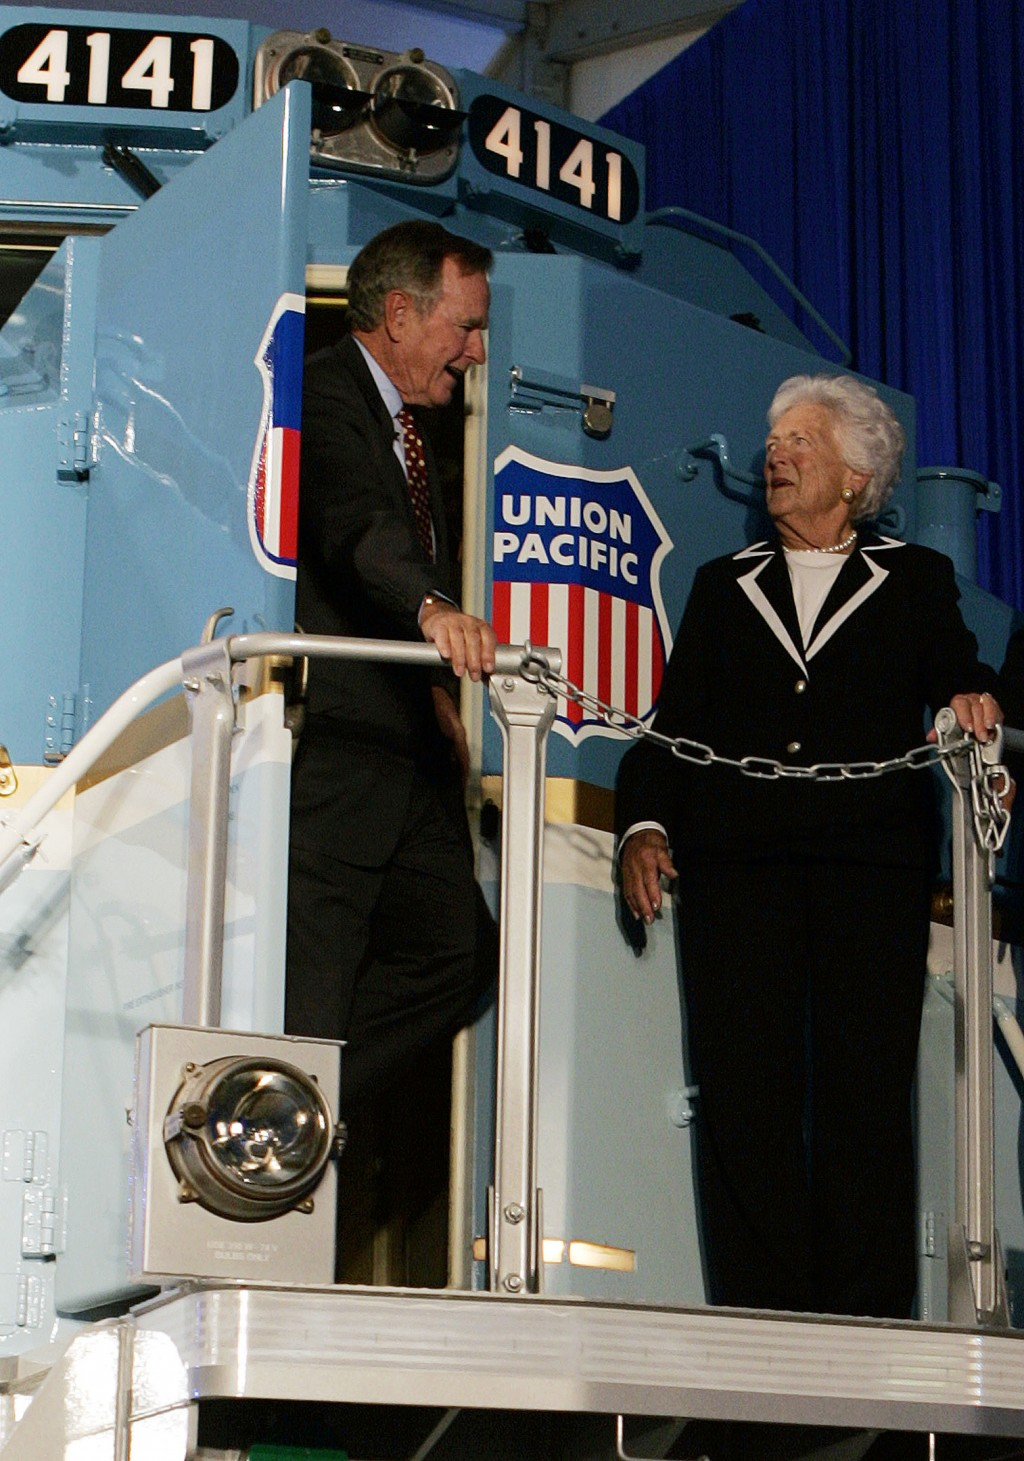 FILE - In this Oct. 18, 2005, file photo, former President George H.W. Bush and his wife, Barbara, tour a new locomotive numbered 4141 in honor of the